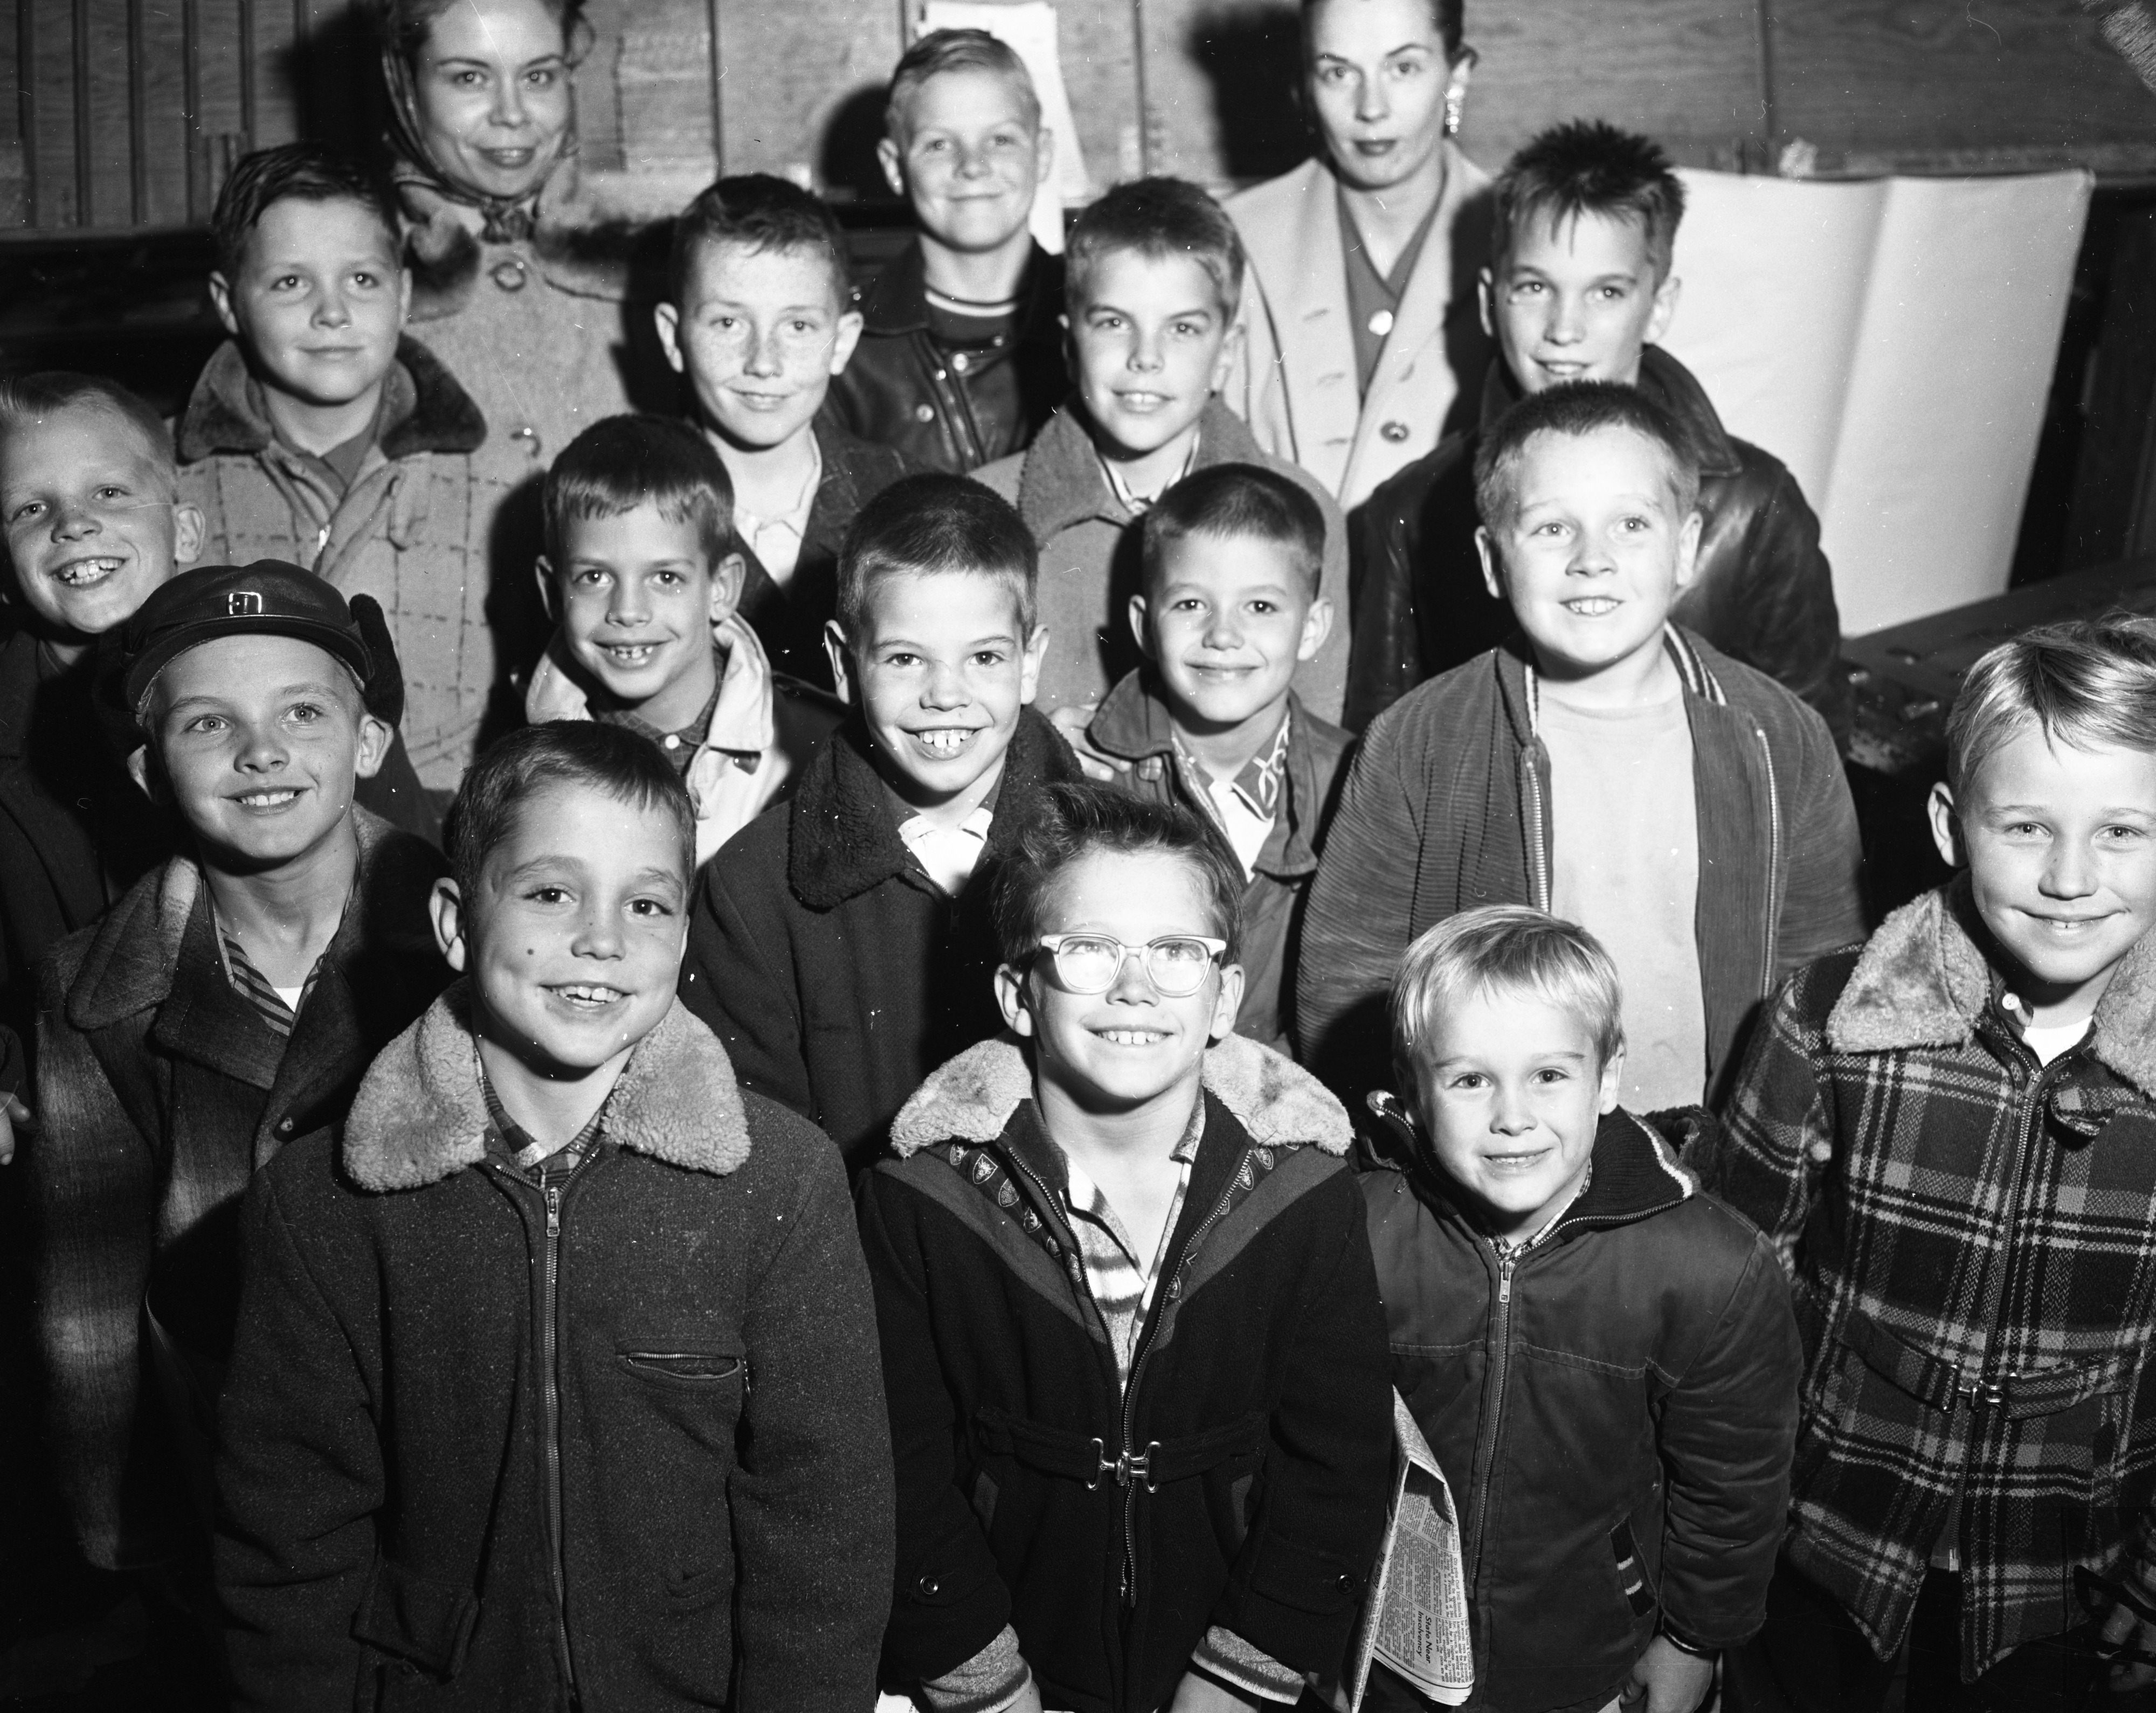 Cub Scouts of Dens Two and Four of the Rawsonville Pack 45 pose after their tour of the Ypsilanti Daily Press, November 1958 image